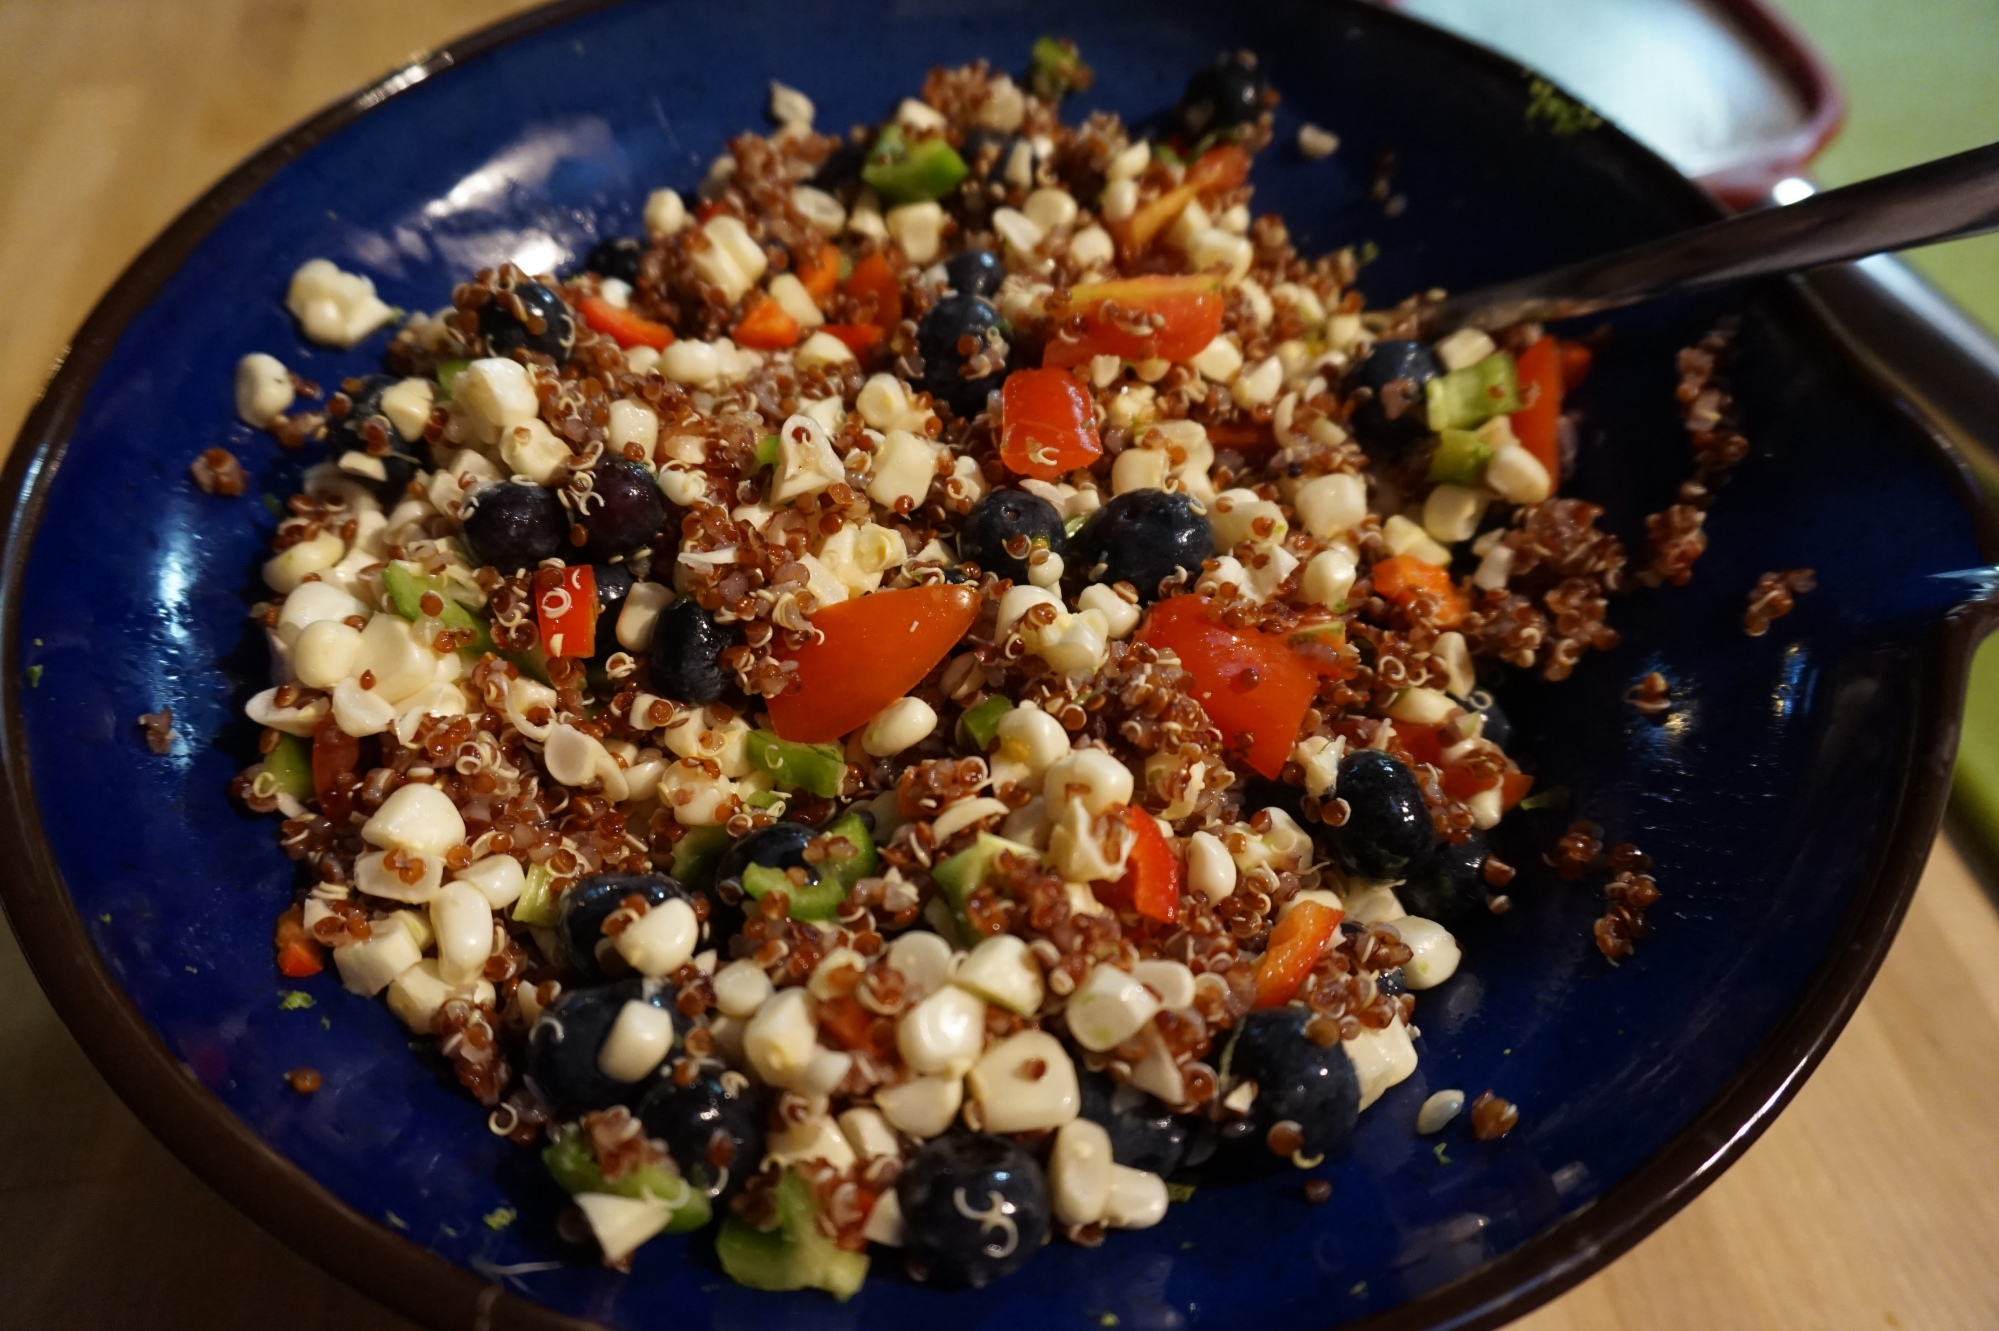 Blueberries, corn, peppers, tomato